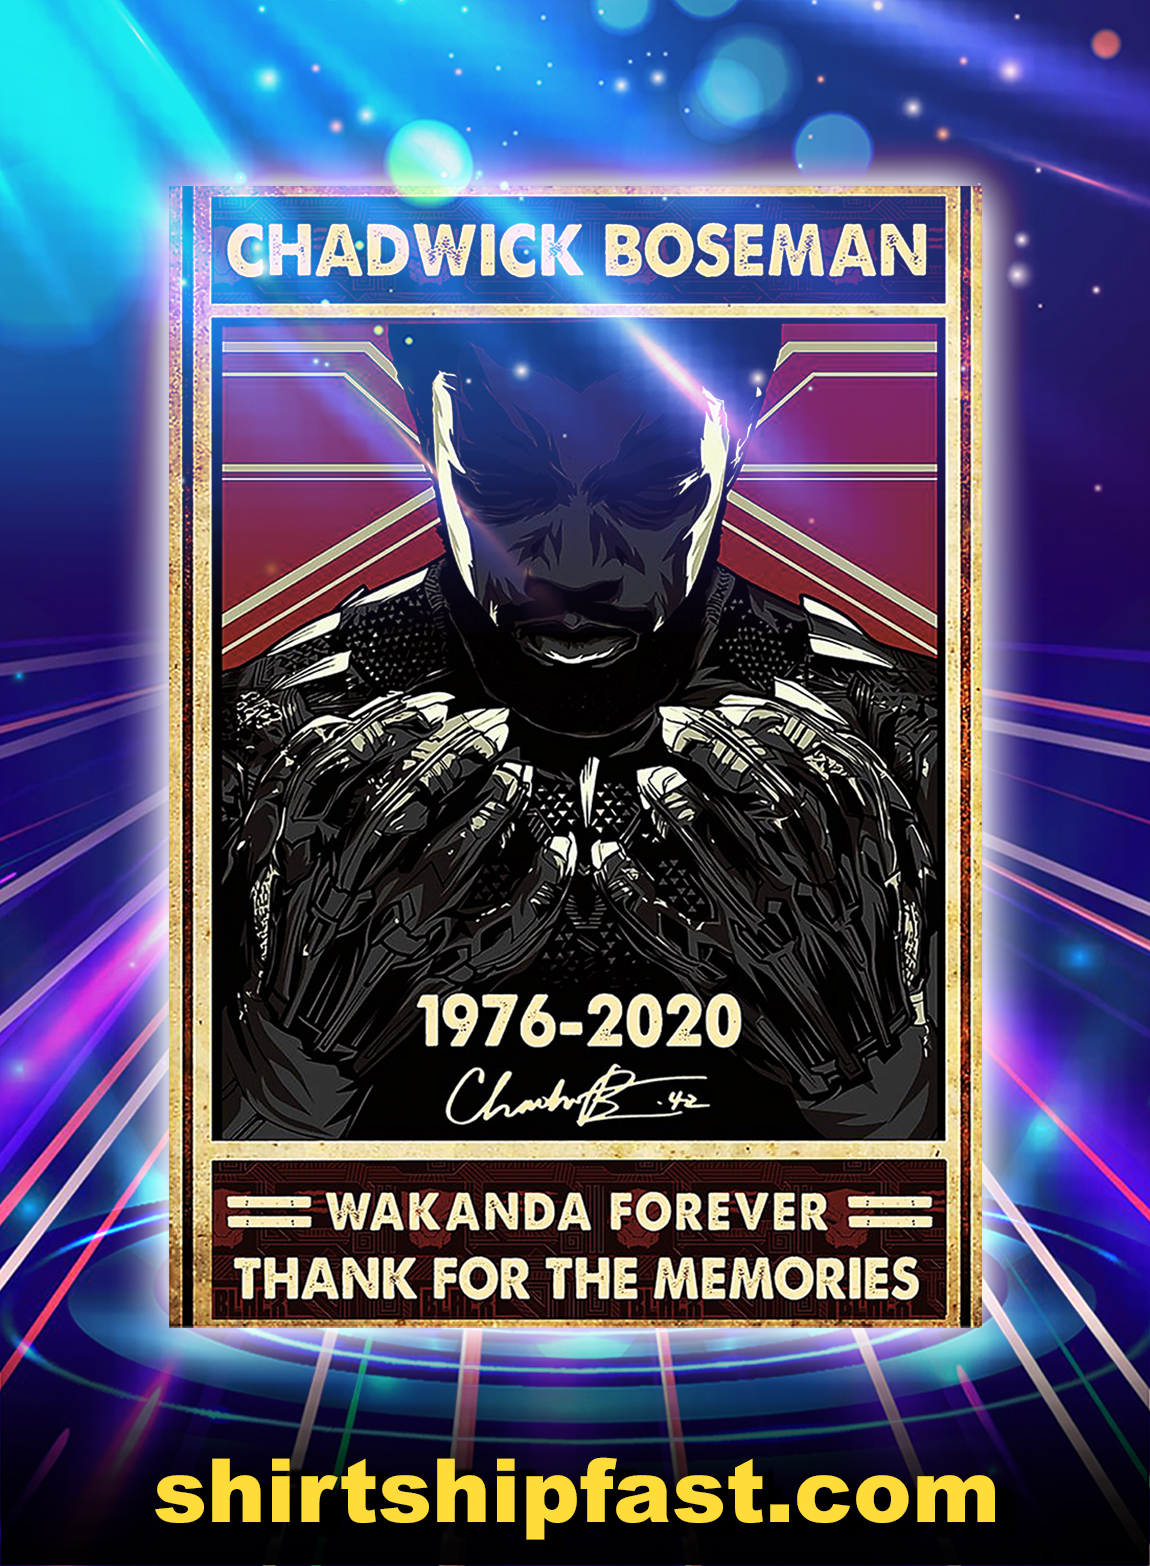 Chadwick boseman wakanda forever thank for the memories poster - A3